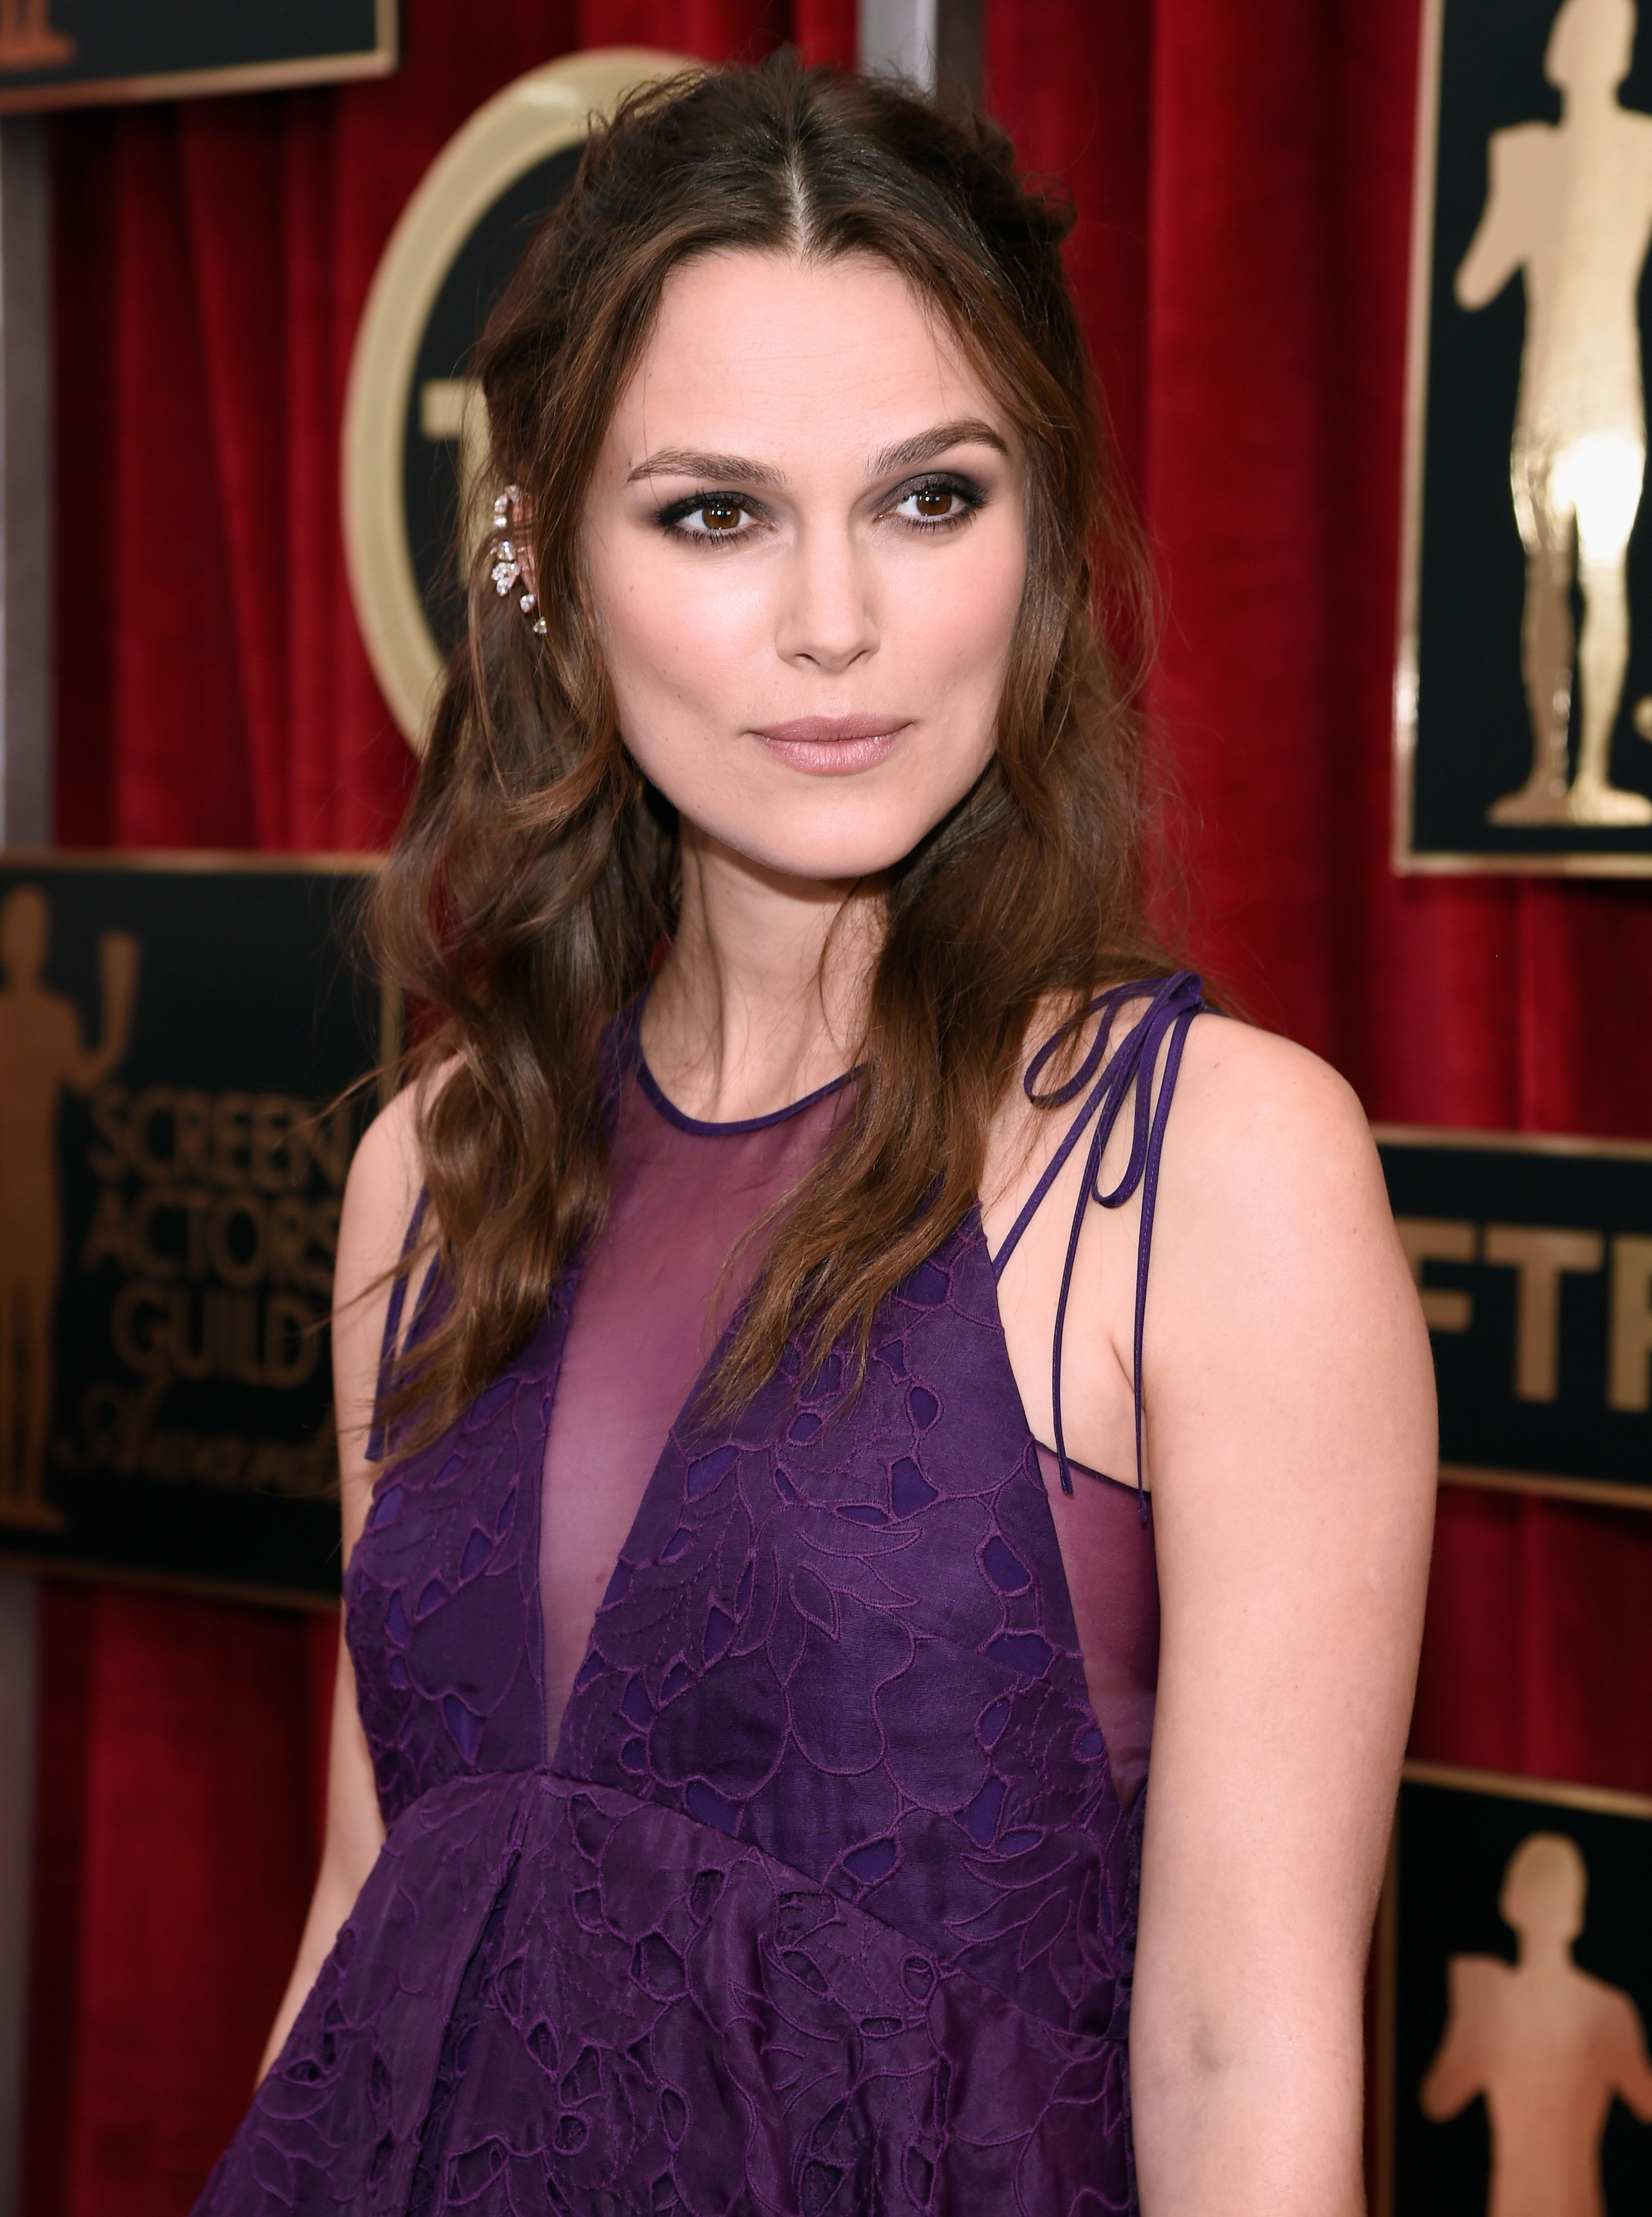 LOS ANGELES, CA - JANUARY 25:  Keira Knightly attends TNT's 21st Annual Screen Actors Guild Awards at The Shrine Auditorium on January 25, 2015 in Los Angeles, California. 25184_016  (Photo by Kevin Mazur/WireImage)